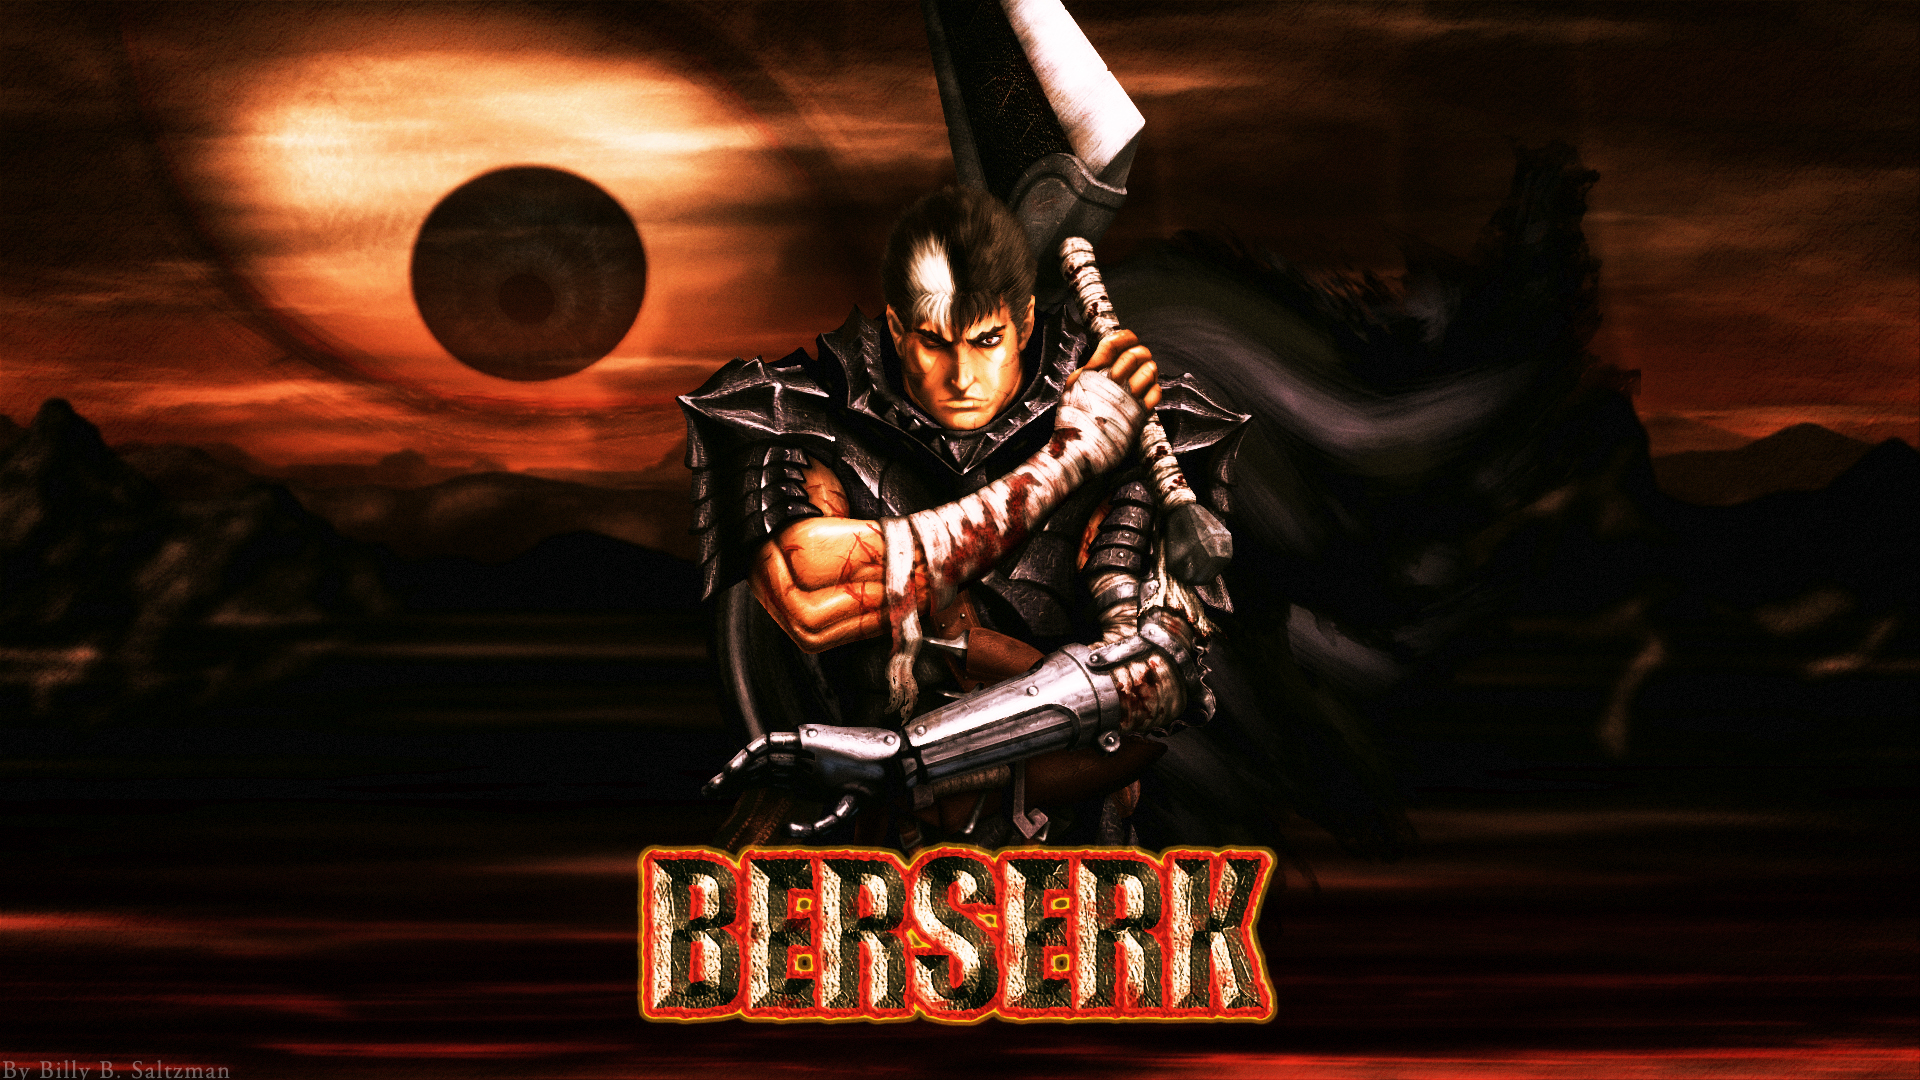 Lectures actuelles - Page 10 Berserk_large_by_billysan291-d371txm